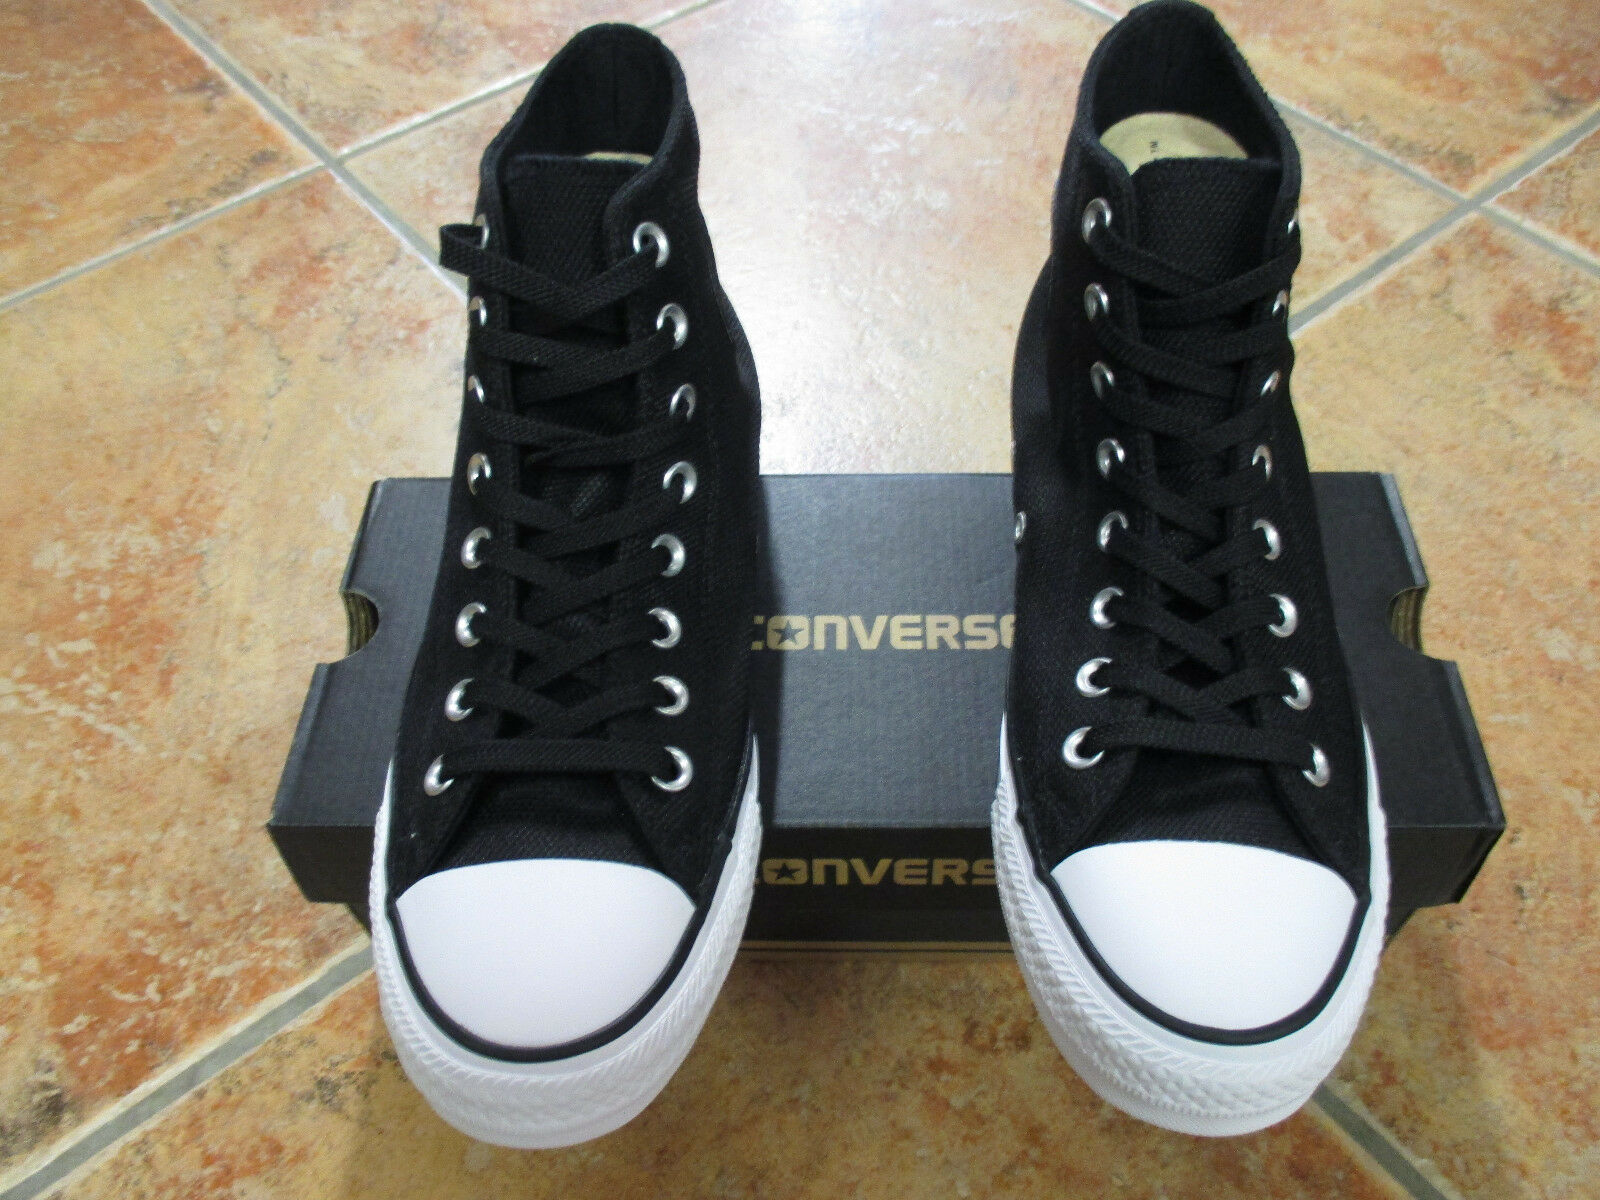 Converse Chuck Taylor All Star HI Canvas Trainer Gr 43 Black  157442C